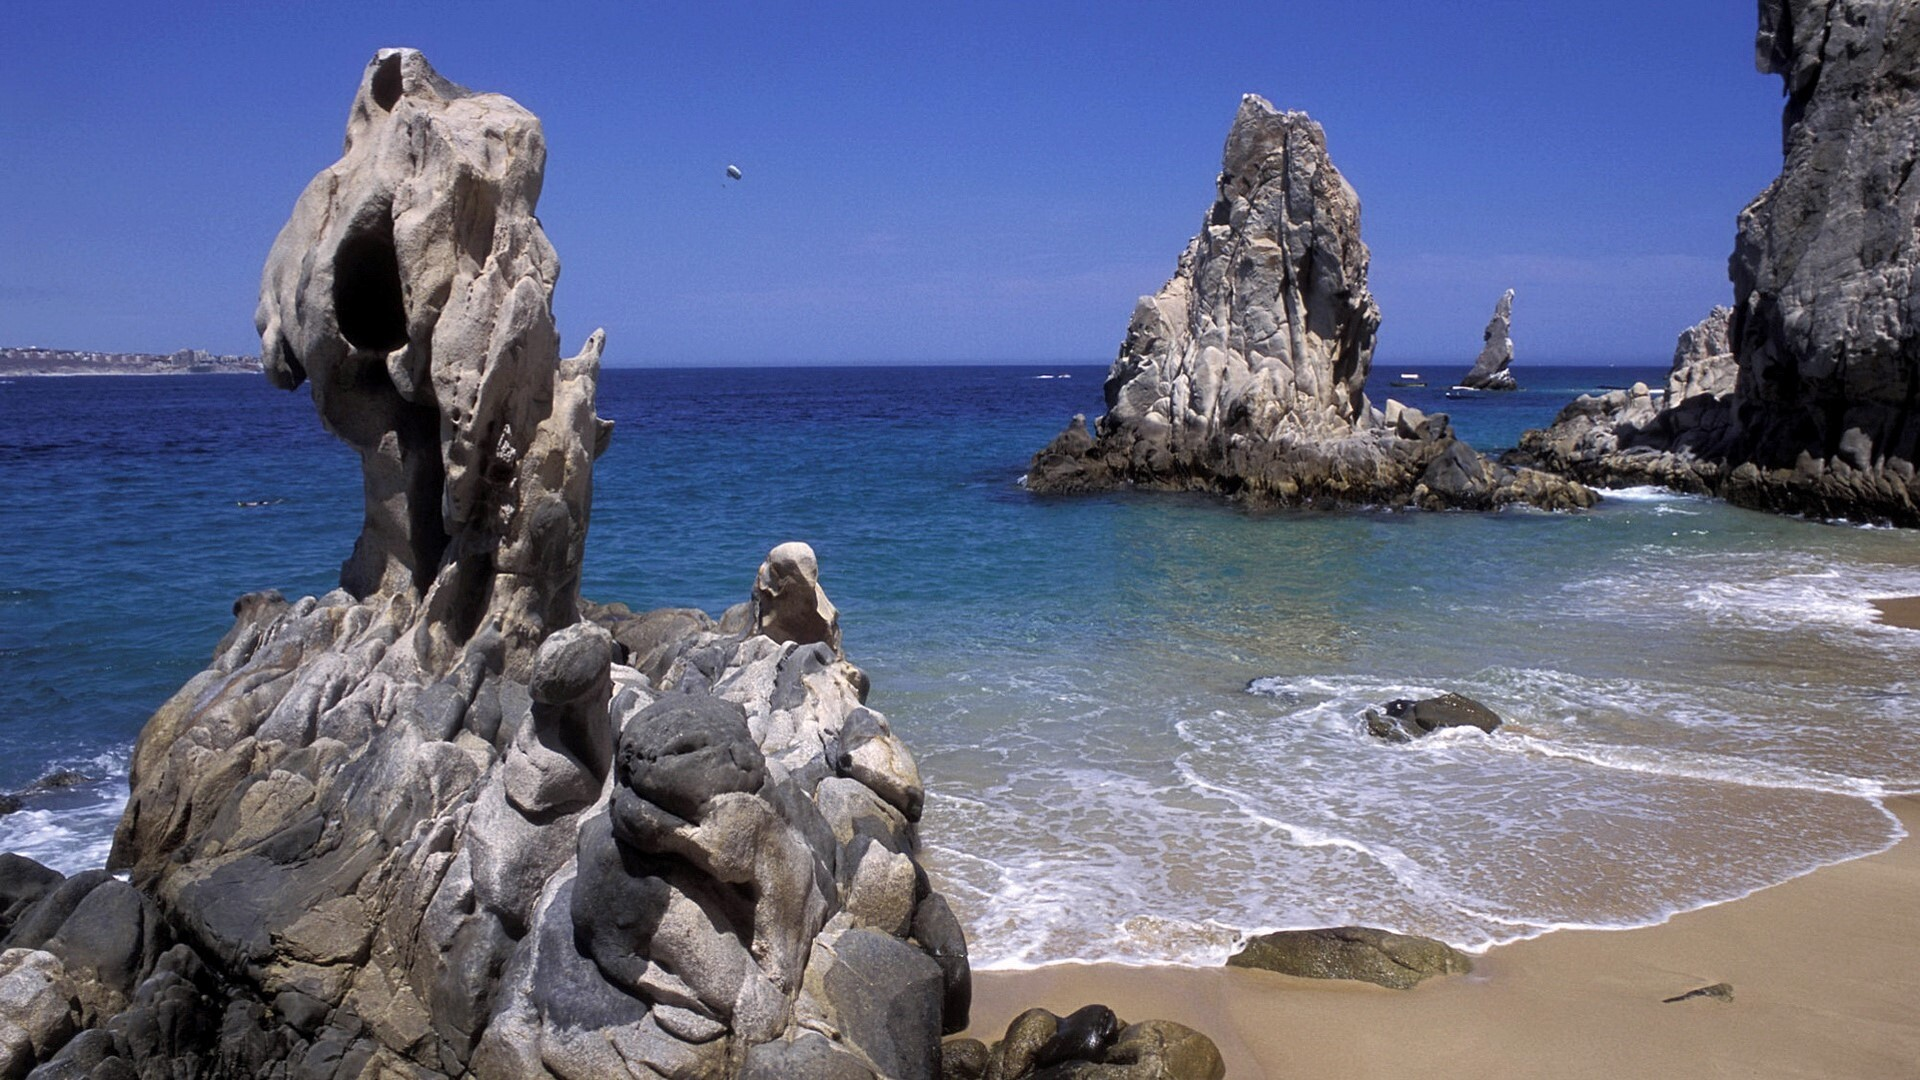 cabo san lucas in mexico | hd wallpapers